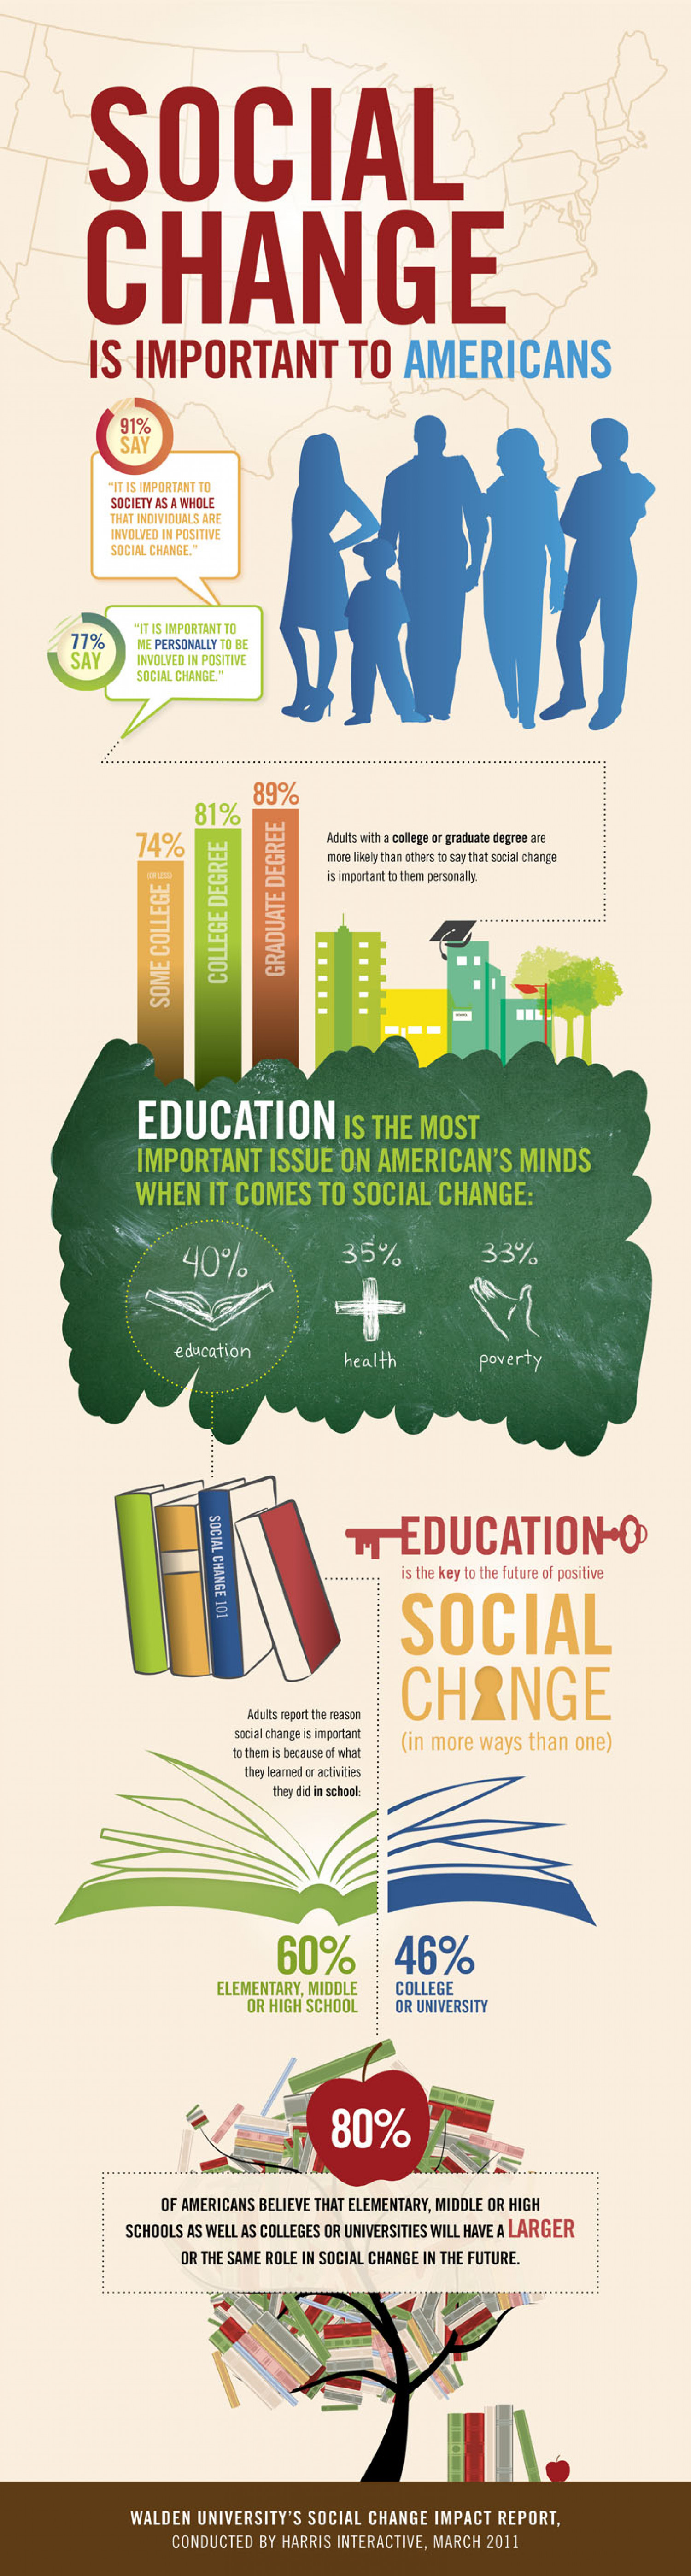 Social Change is Important Infographic